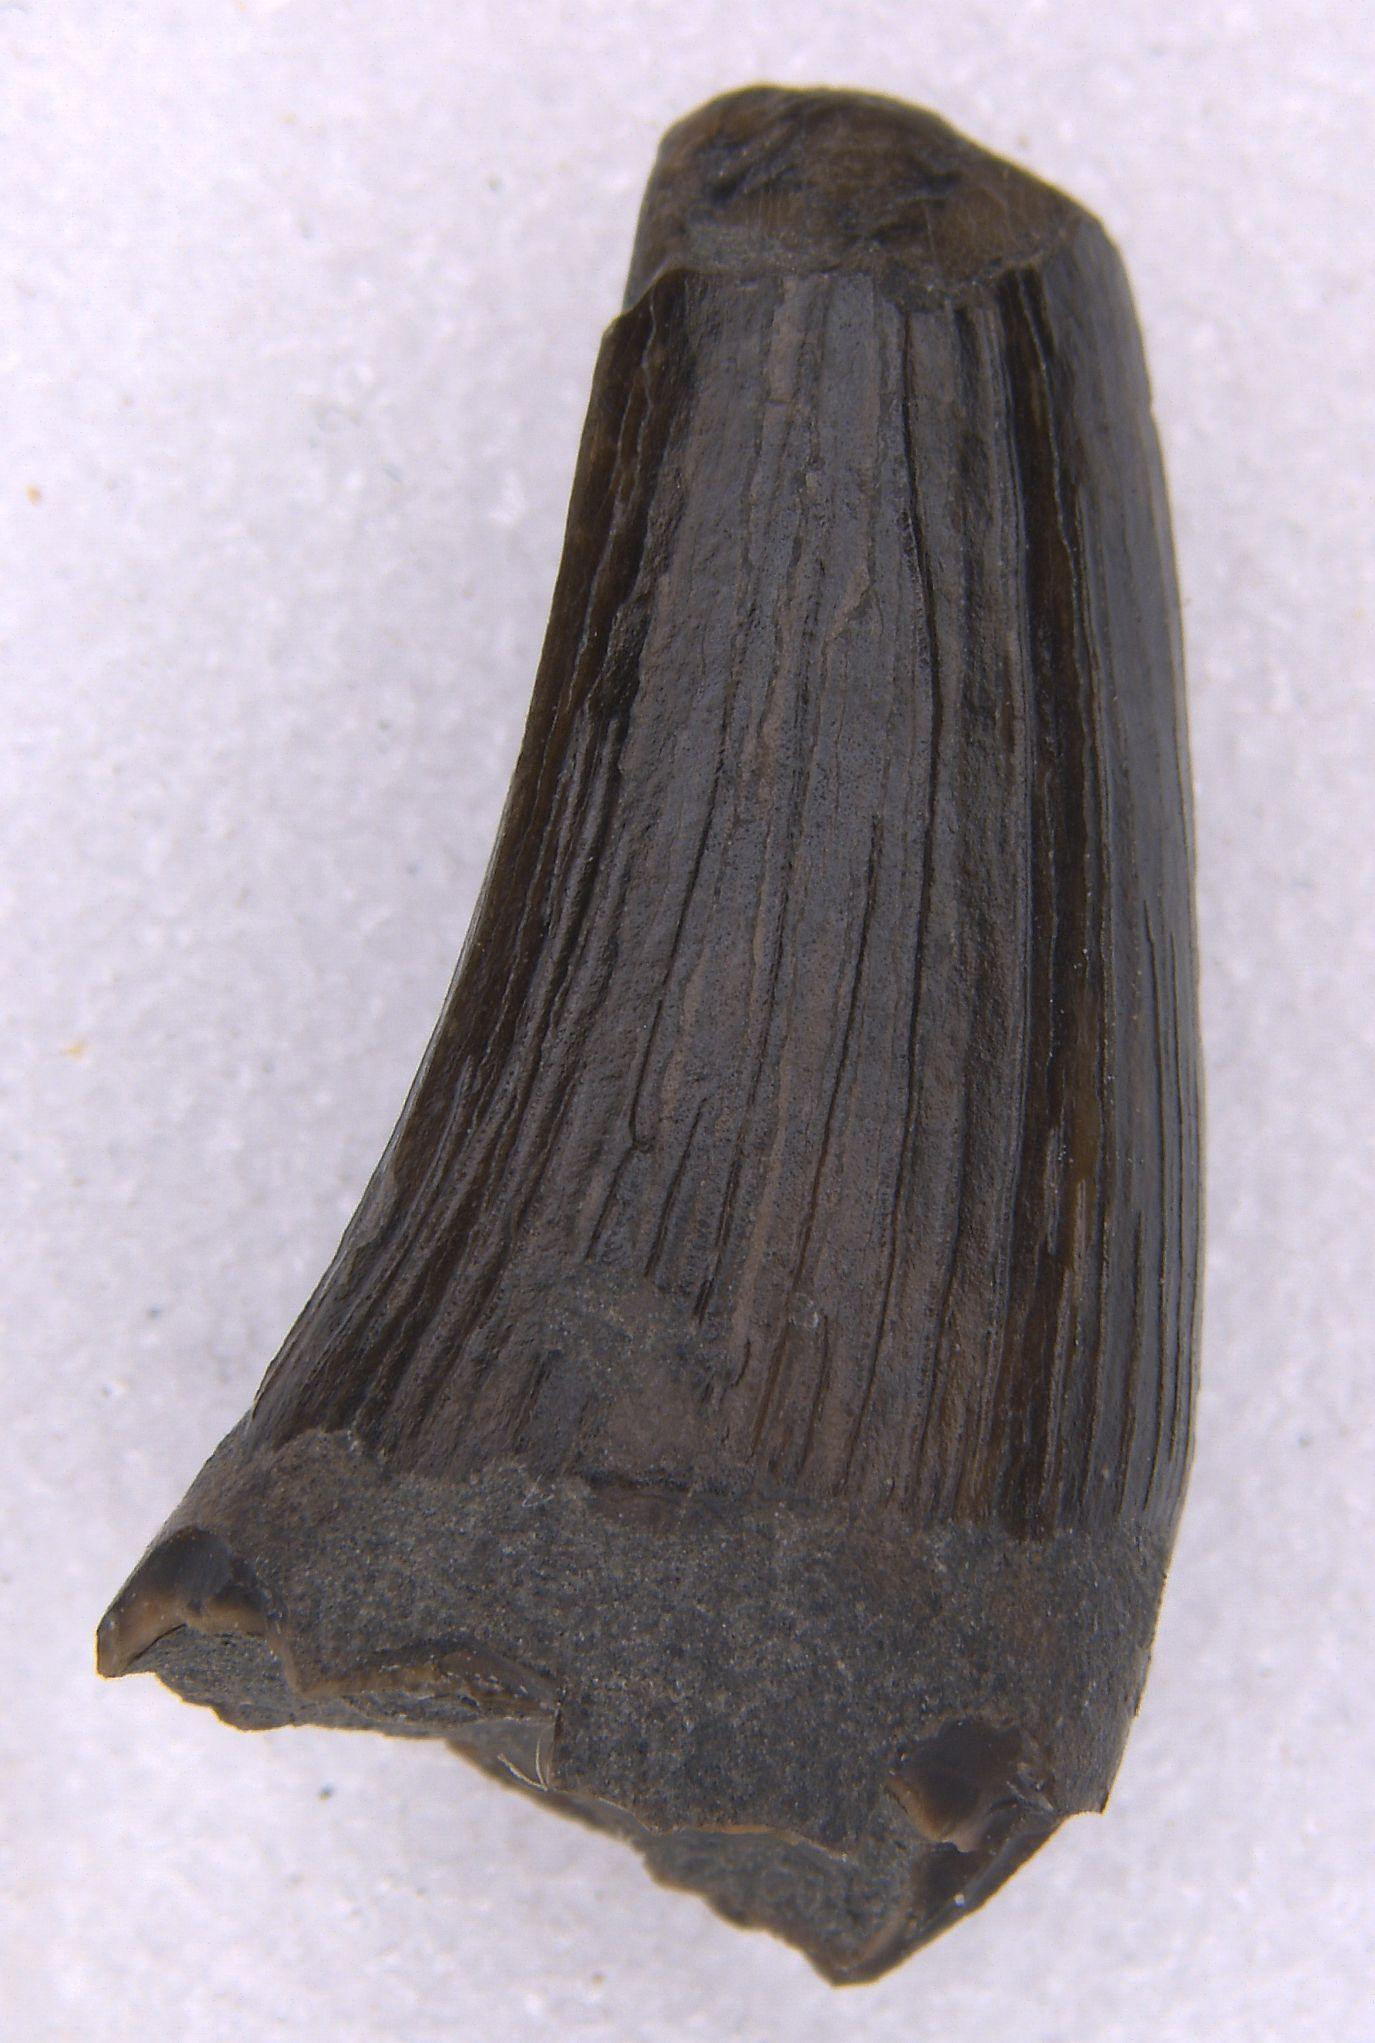 Rare plesiosaur tooth recently discovered by a young fossil collector near Staffin, Skye. This fossil has been donated to the Staffin Museum, Isle of Skye. © N. Clark, The Hunterian, University of Glasgow